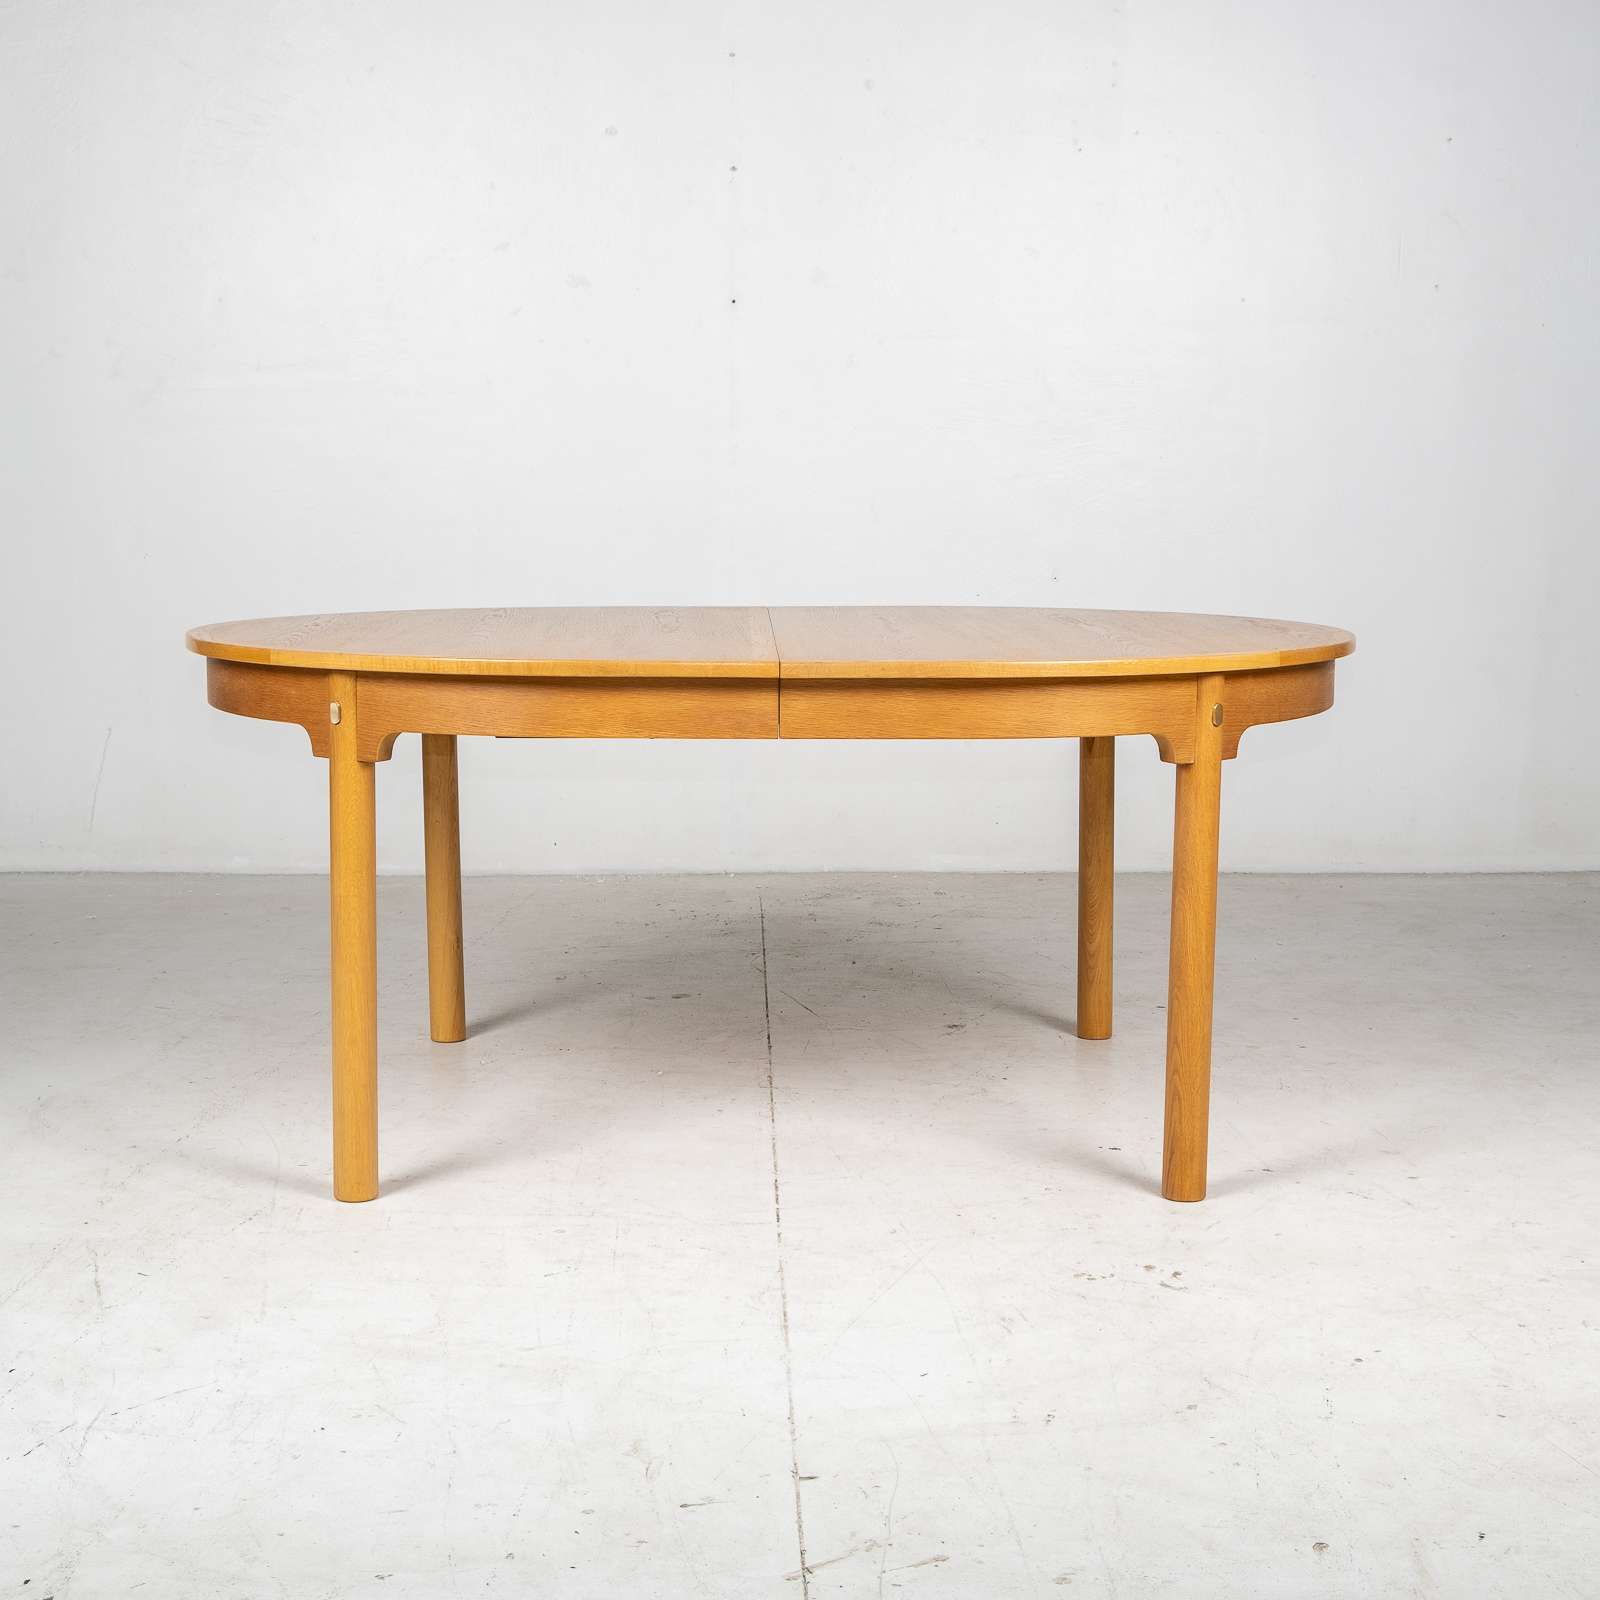 Oresund Round Dining Table By Borge Mogensen For Karl Andersson & Soner In Oak With One Extension Leaf, 1960s, Denmark1